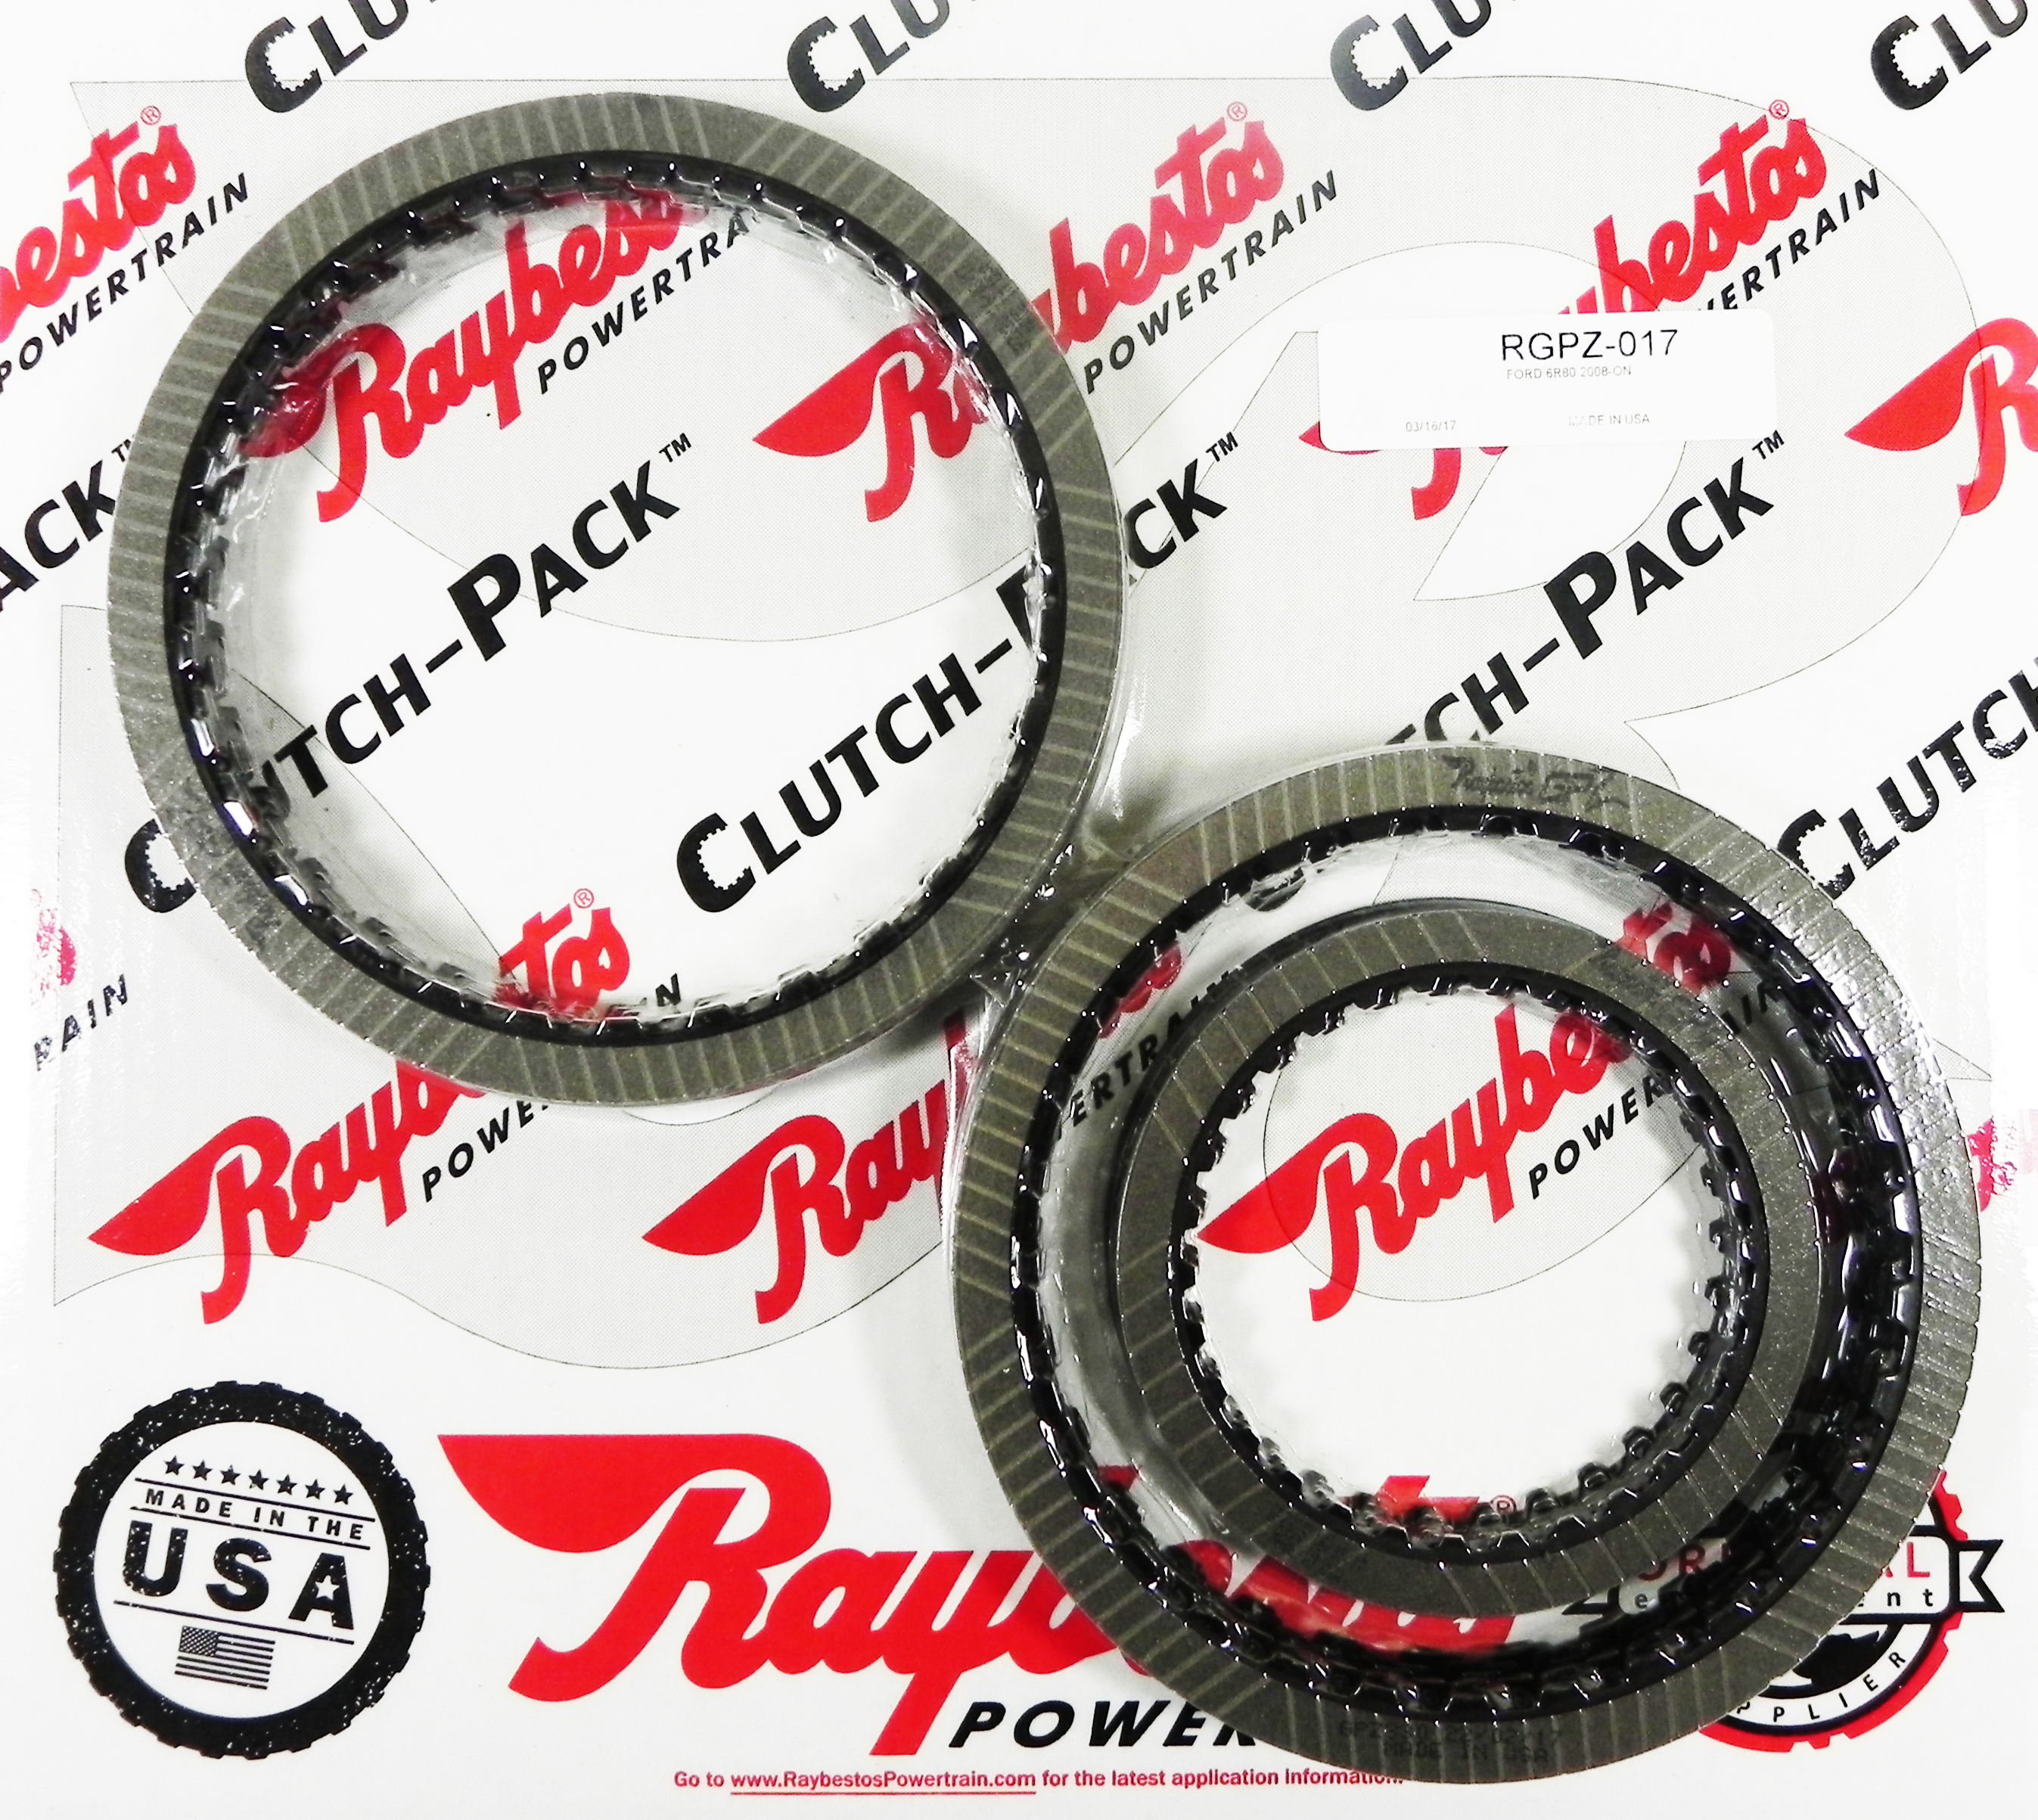 RGPZ-017 | 2008-ON GPZ Friction Clutch Pack Module